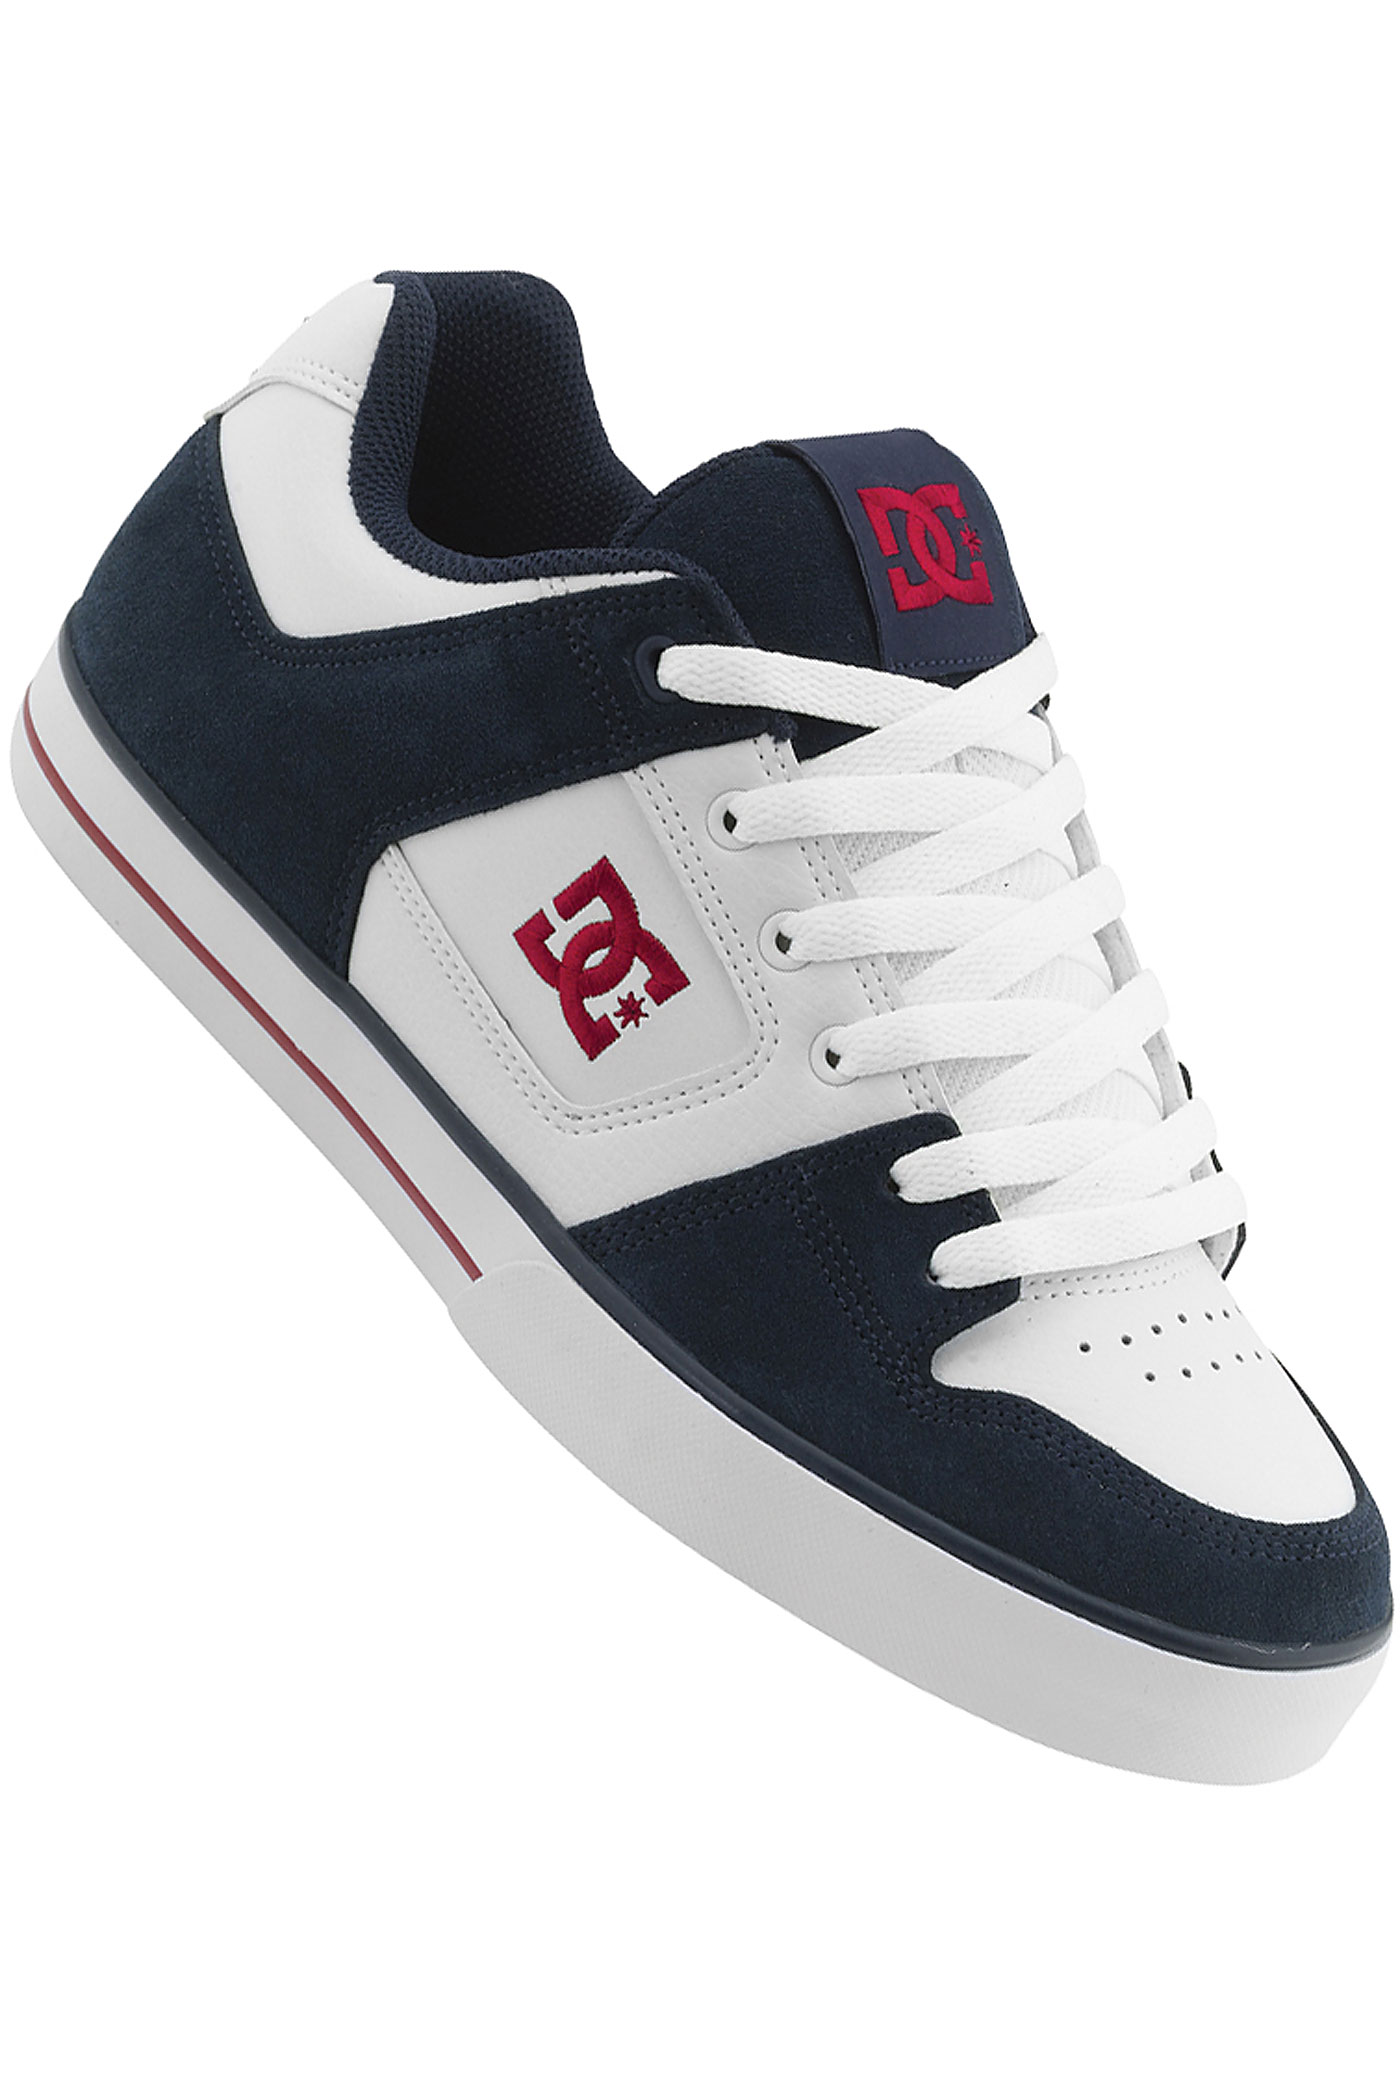 to delete this dc pure shoe white dc navy buy at skatedeluxe image